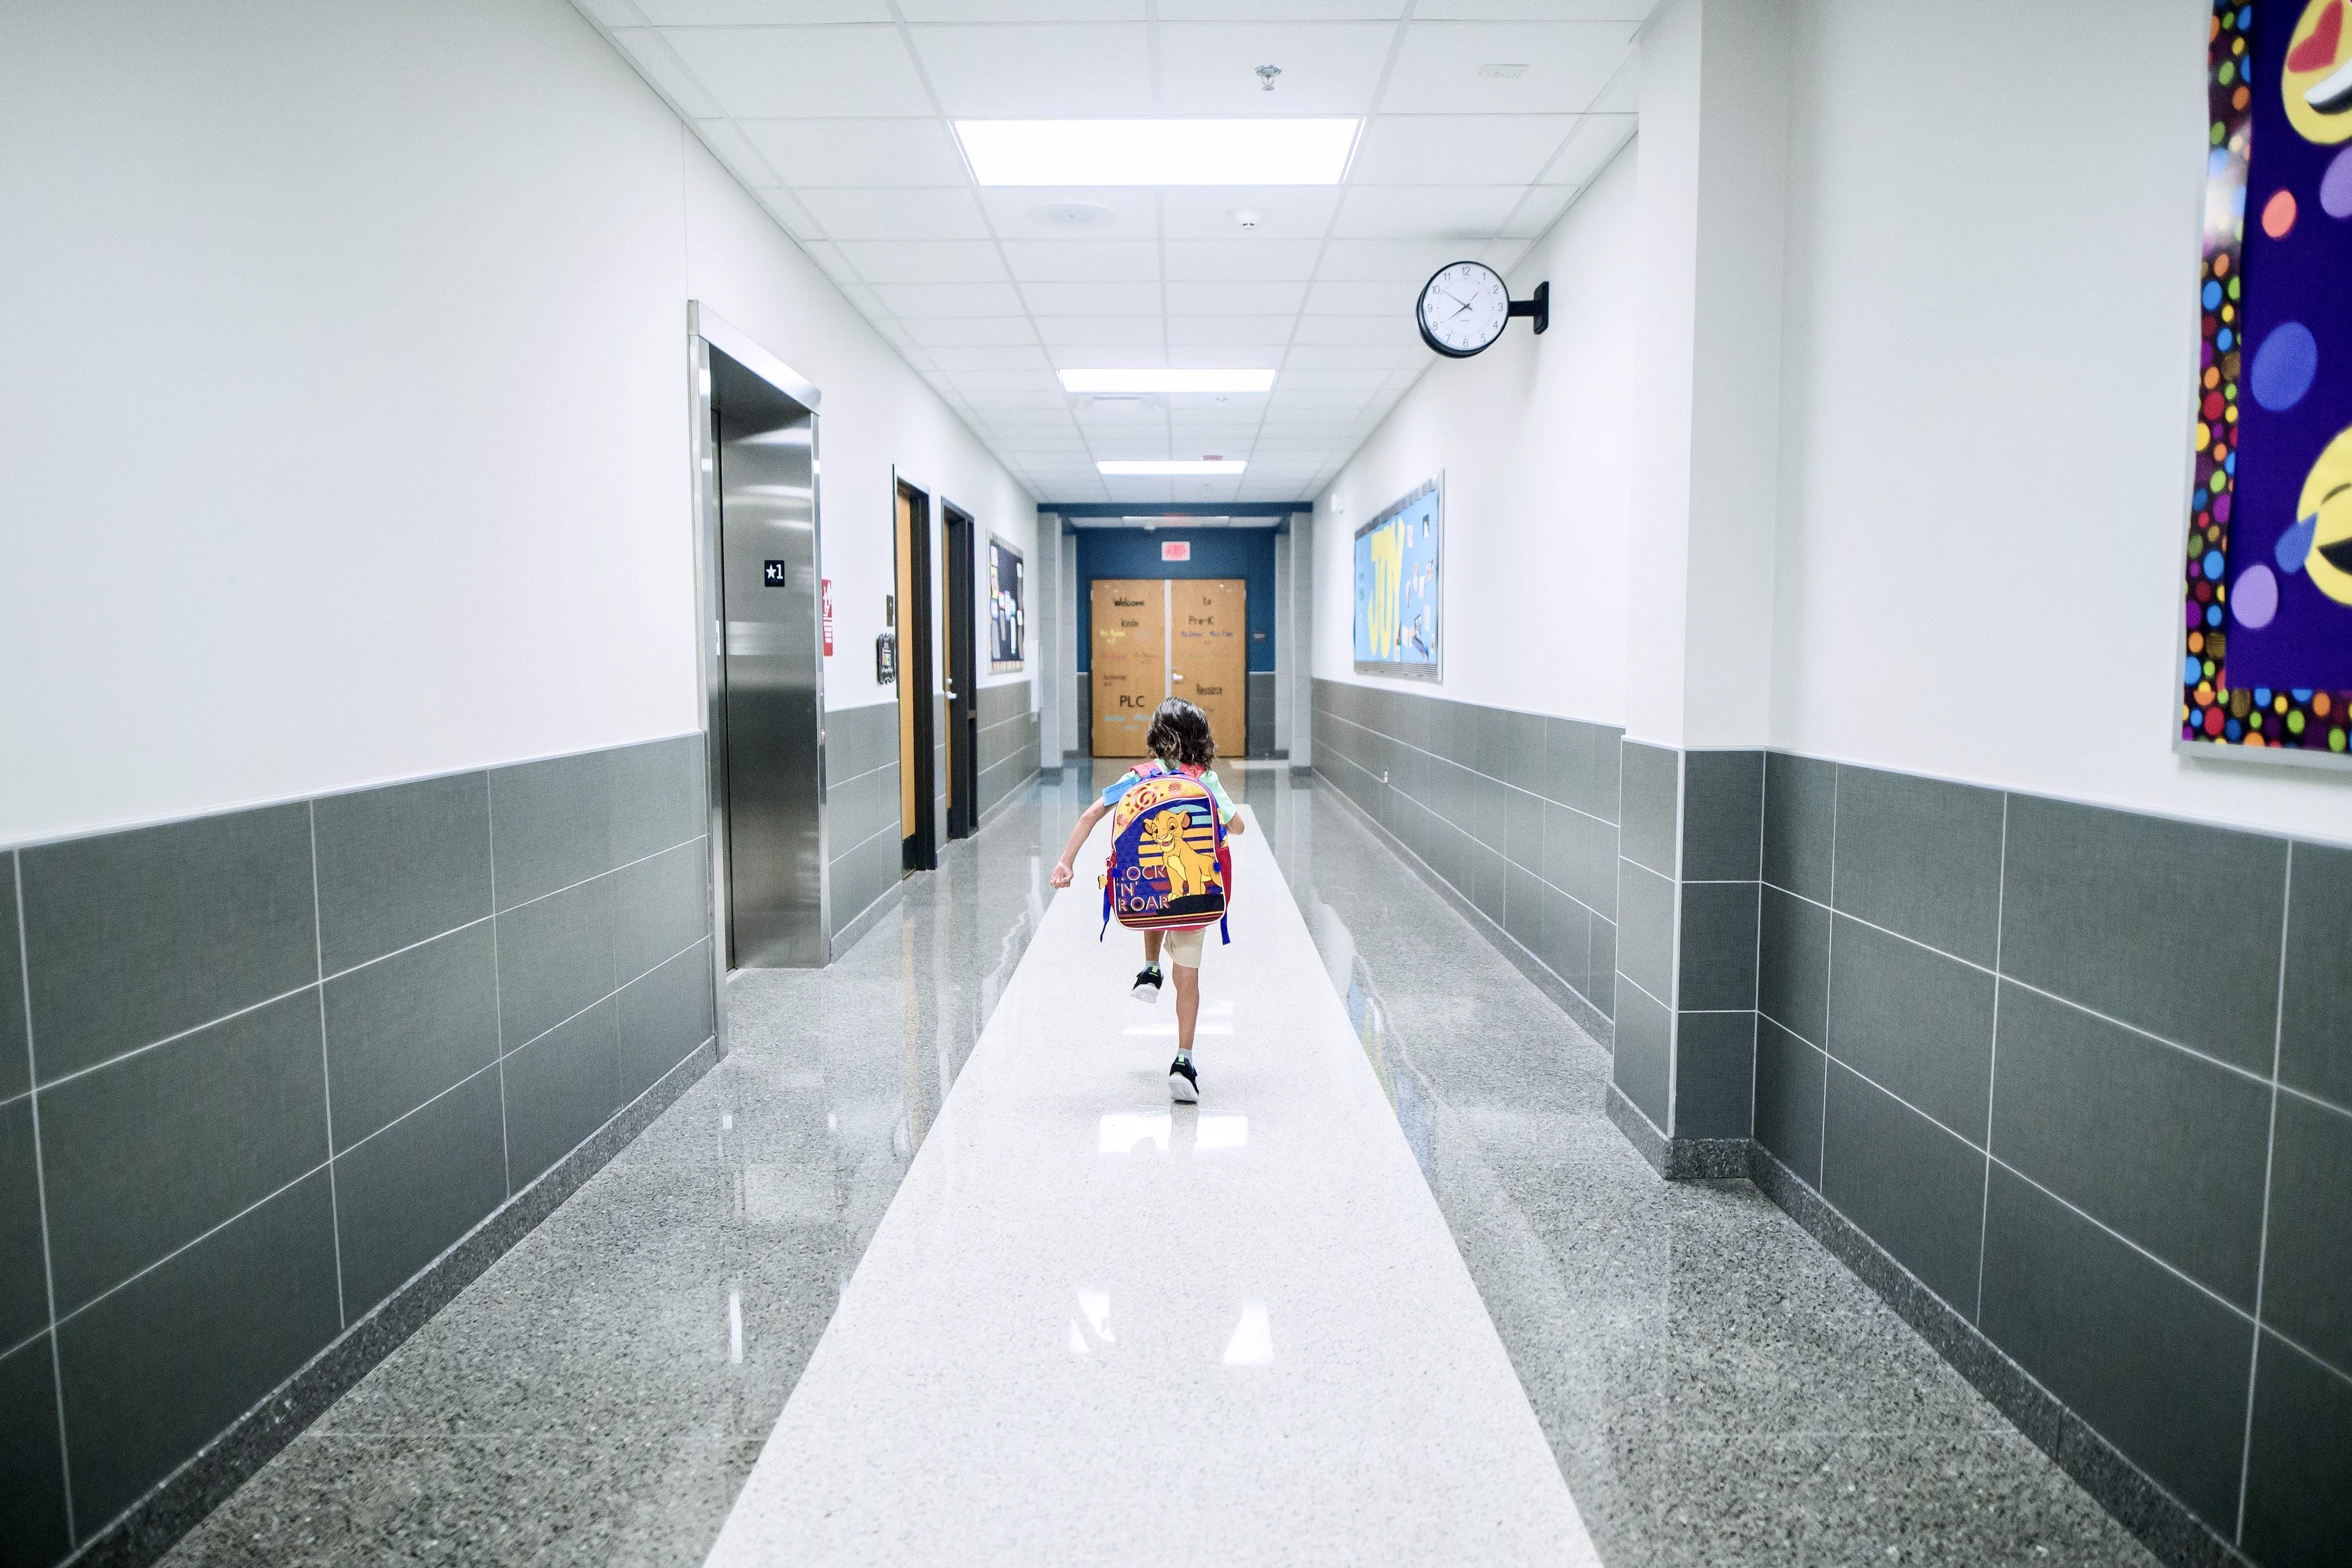 Children are highly susceptible to unintentional injuries; in fact, for kids ages one to 14, falls and being struck by an object were the leading causes of emergency room visits in 2009-10, according to ChildStats.gov.